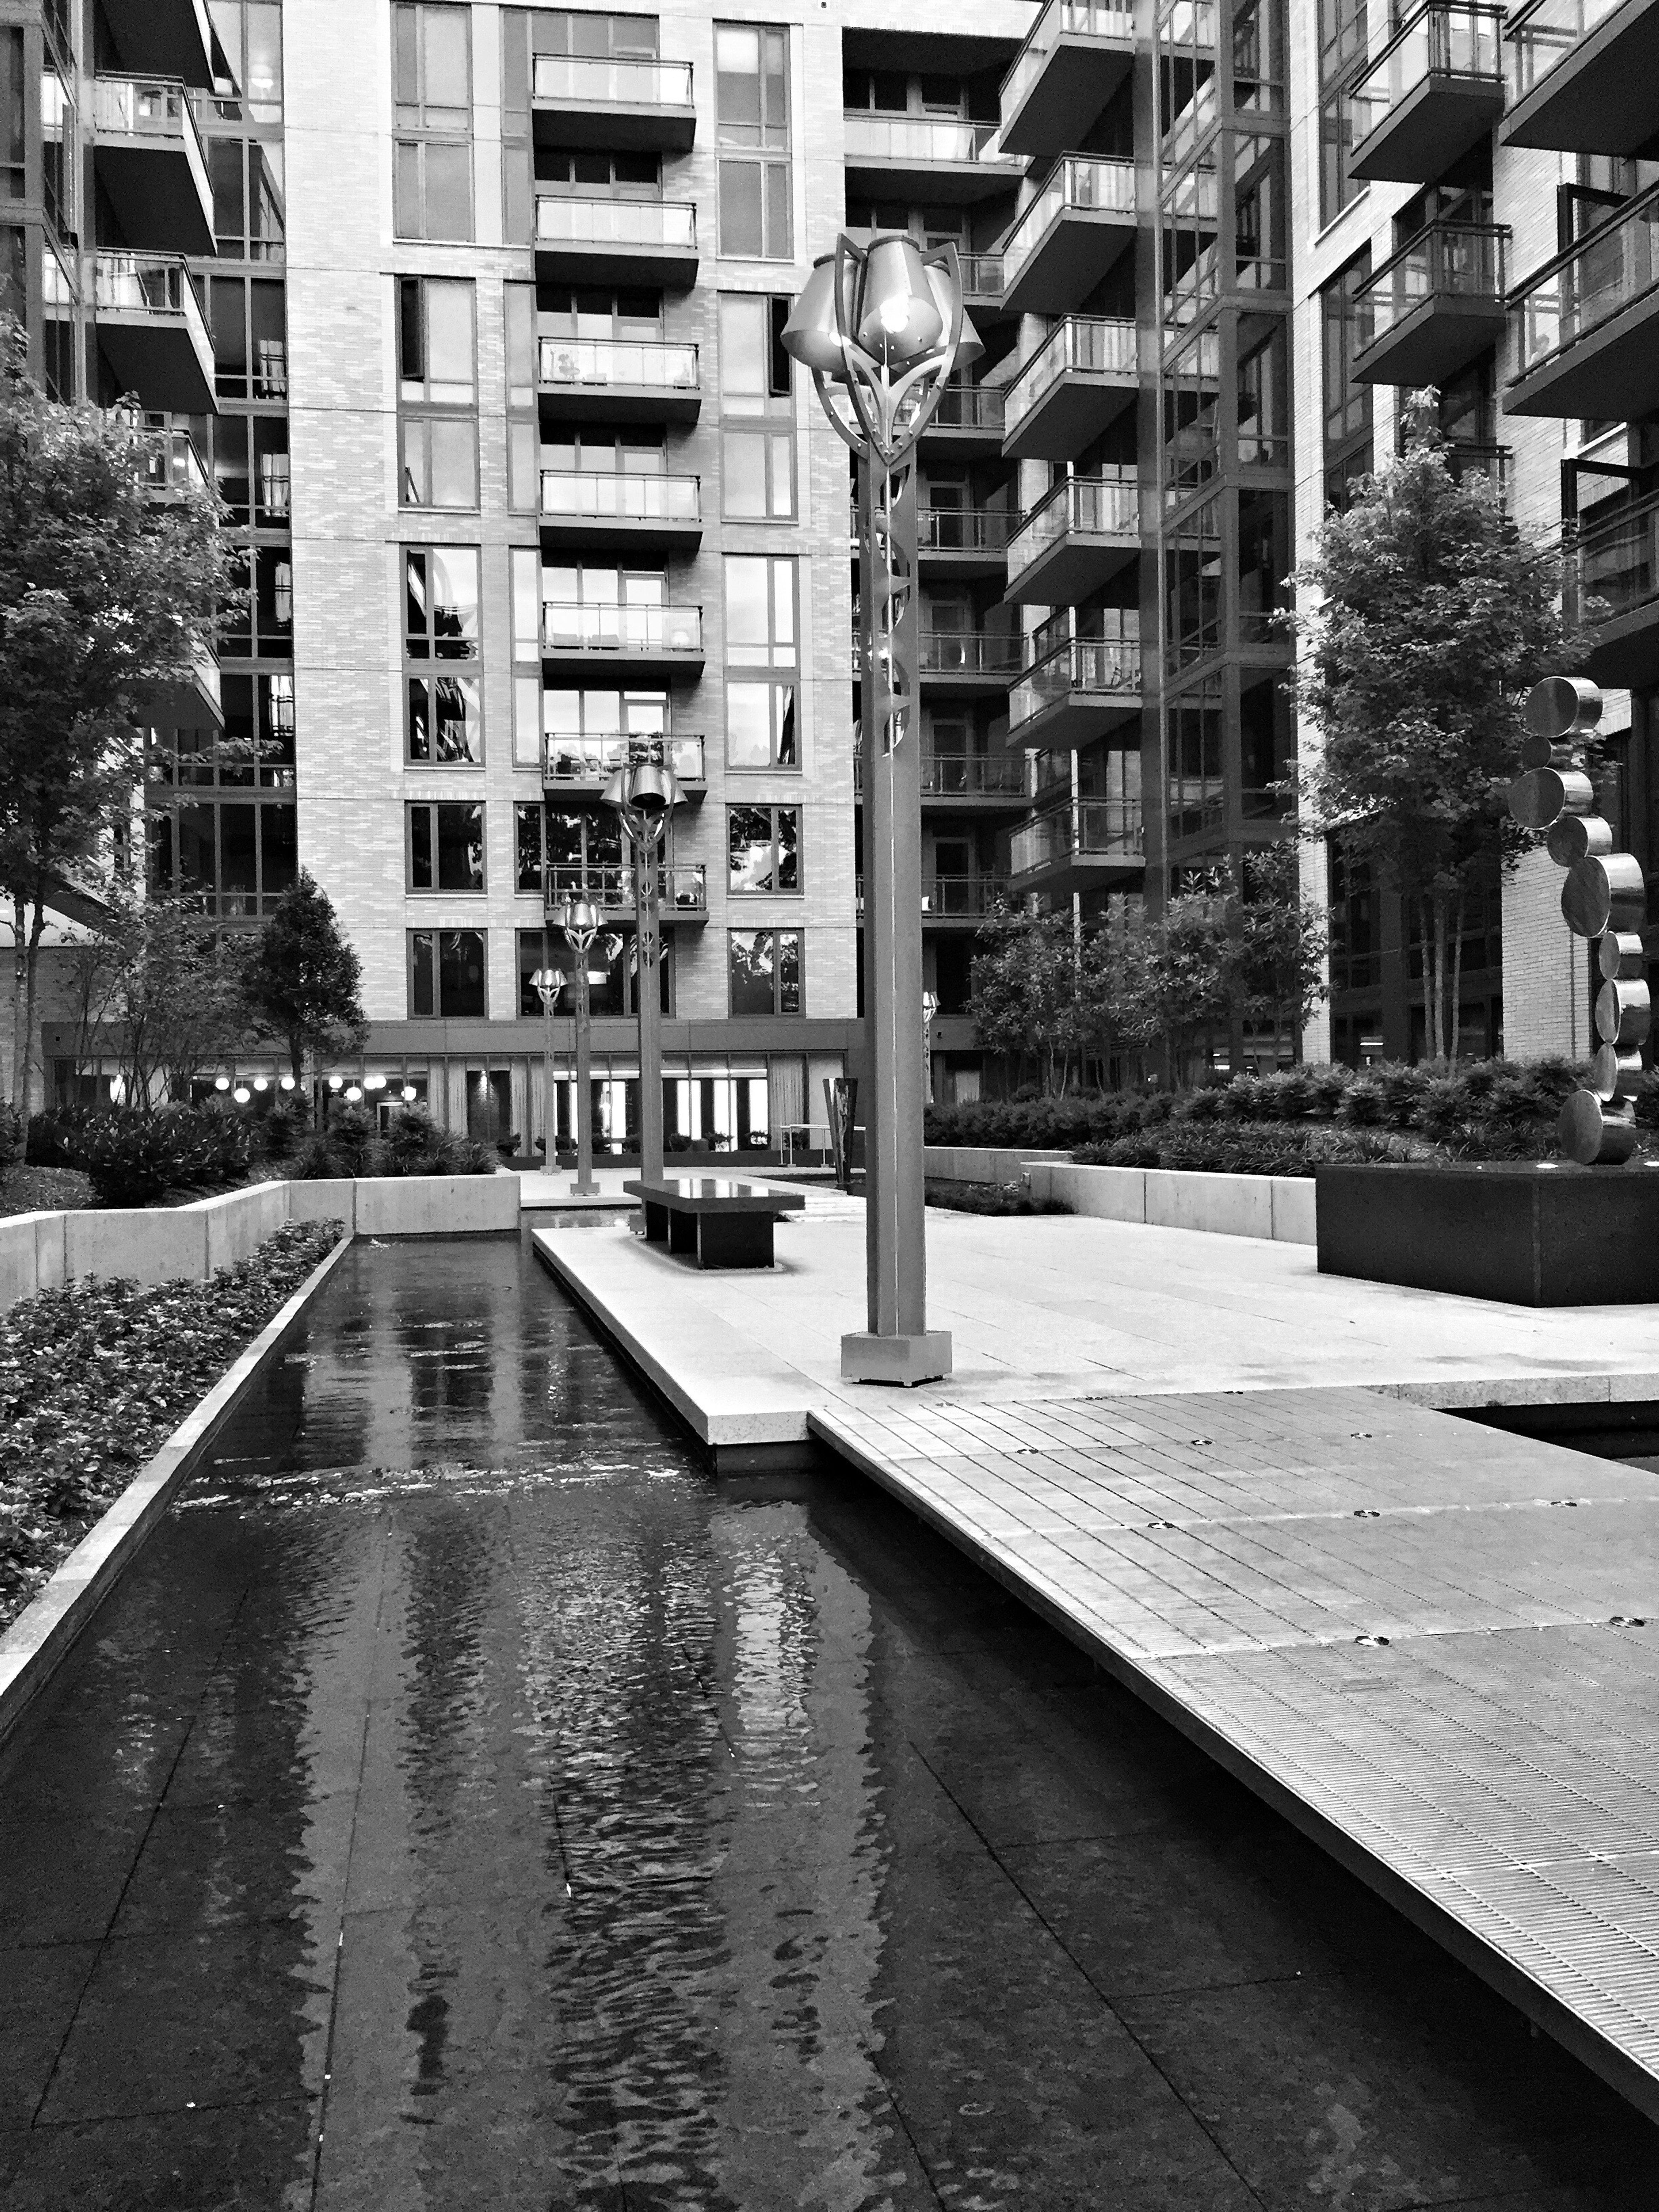 Building Exterior Built Structure Architecture City Water Residential Structure Travel Destinations Reflection IPhoneography Black & White Monochrome Architecture Canal City Life Apartment City Street Tower Residential District Skyscraper Waterfront Modern Building Story Tall - High Outdoors